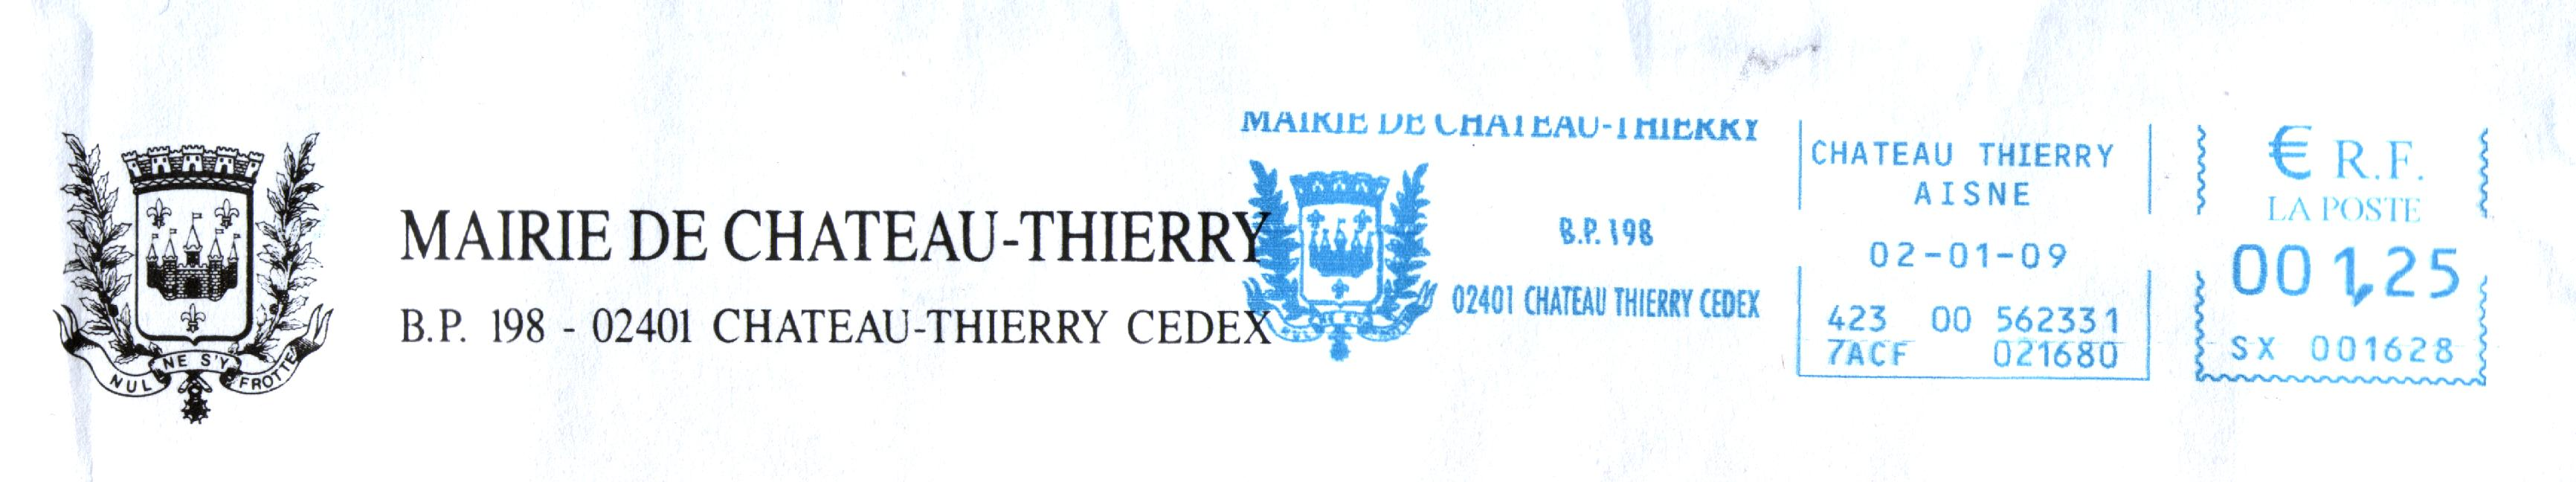 post uit Chateau-Thierry